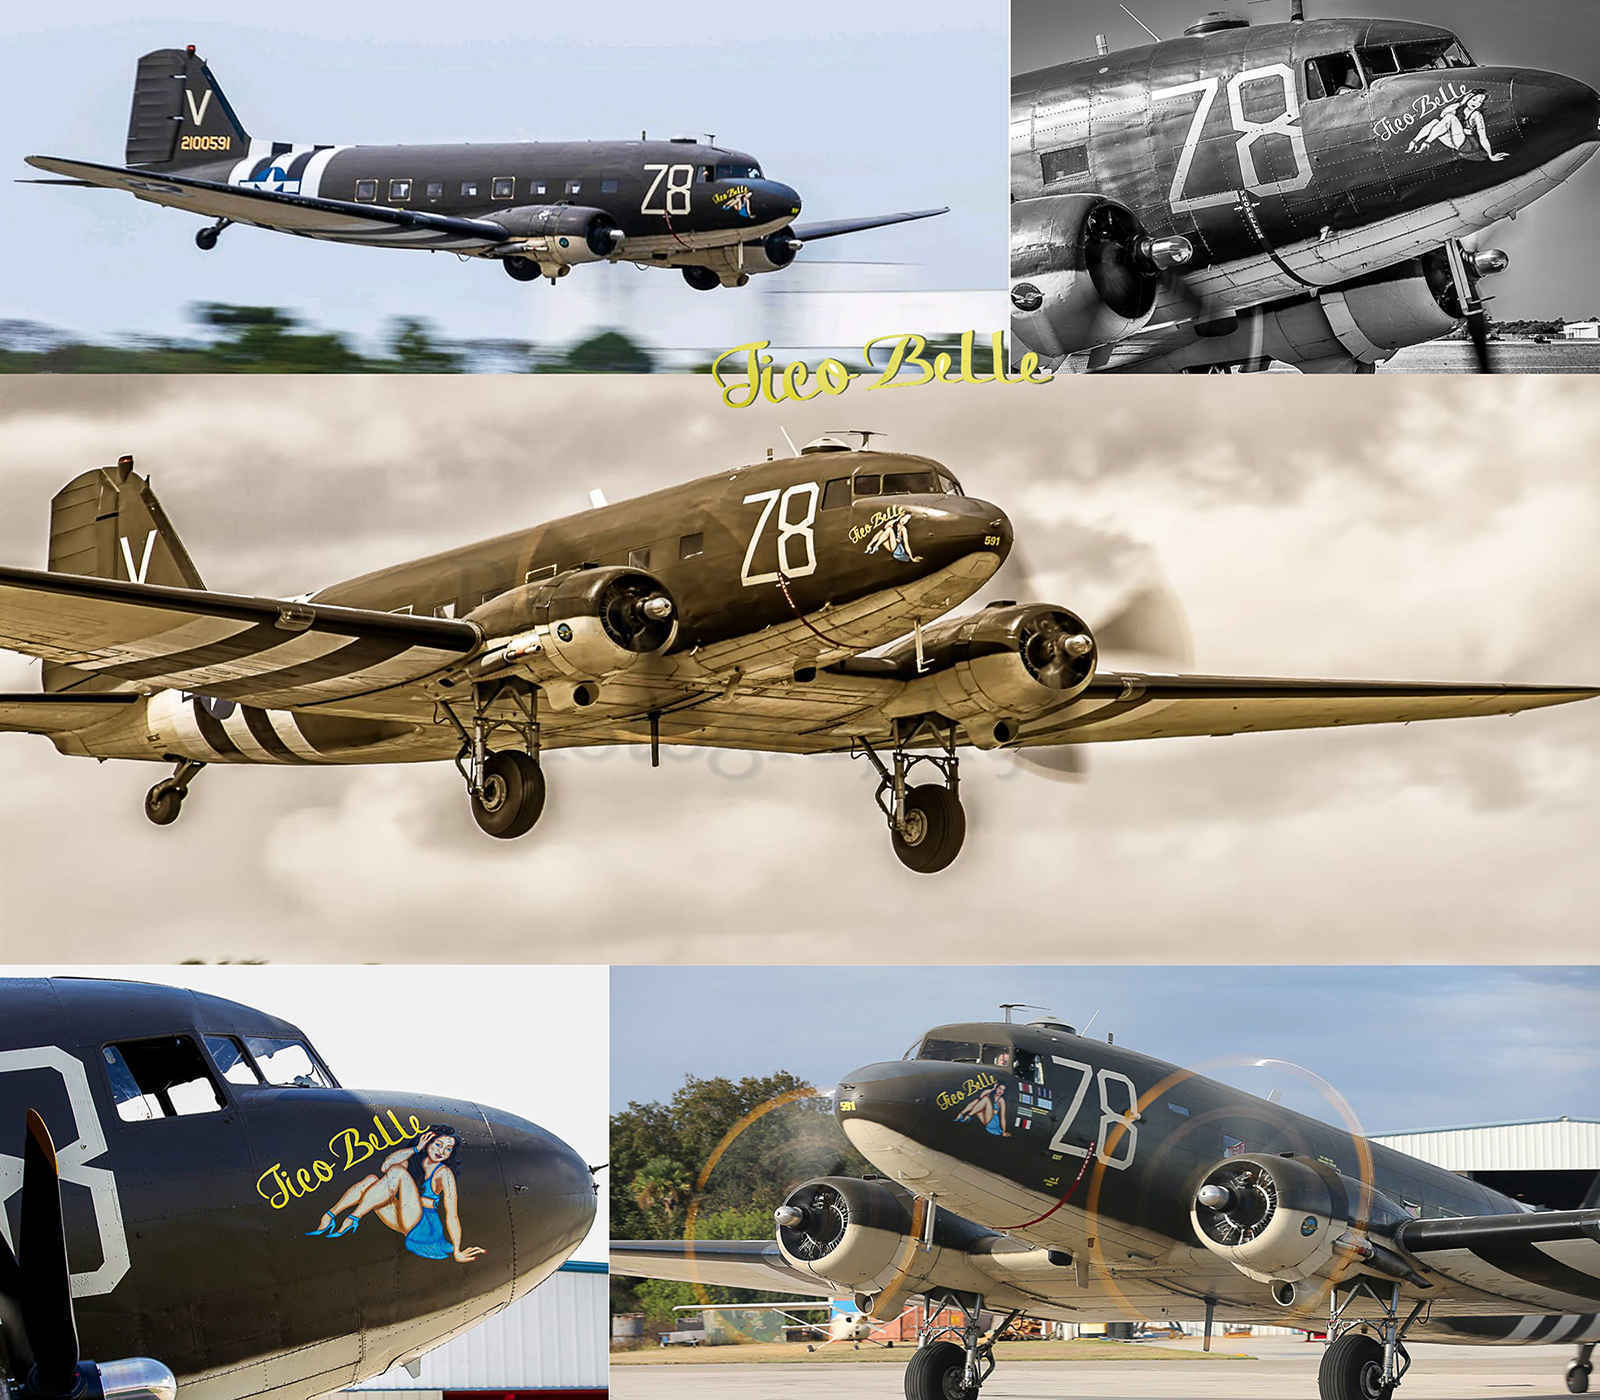 Donate to keep our c-47 The Tico Belle Keep her Flying image